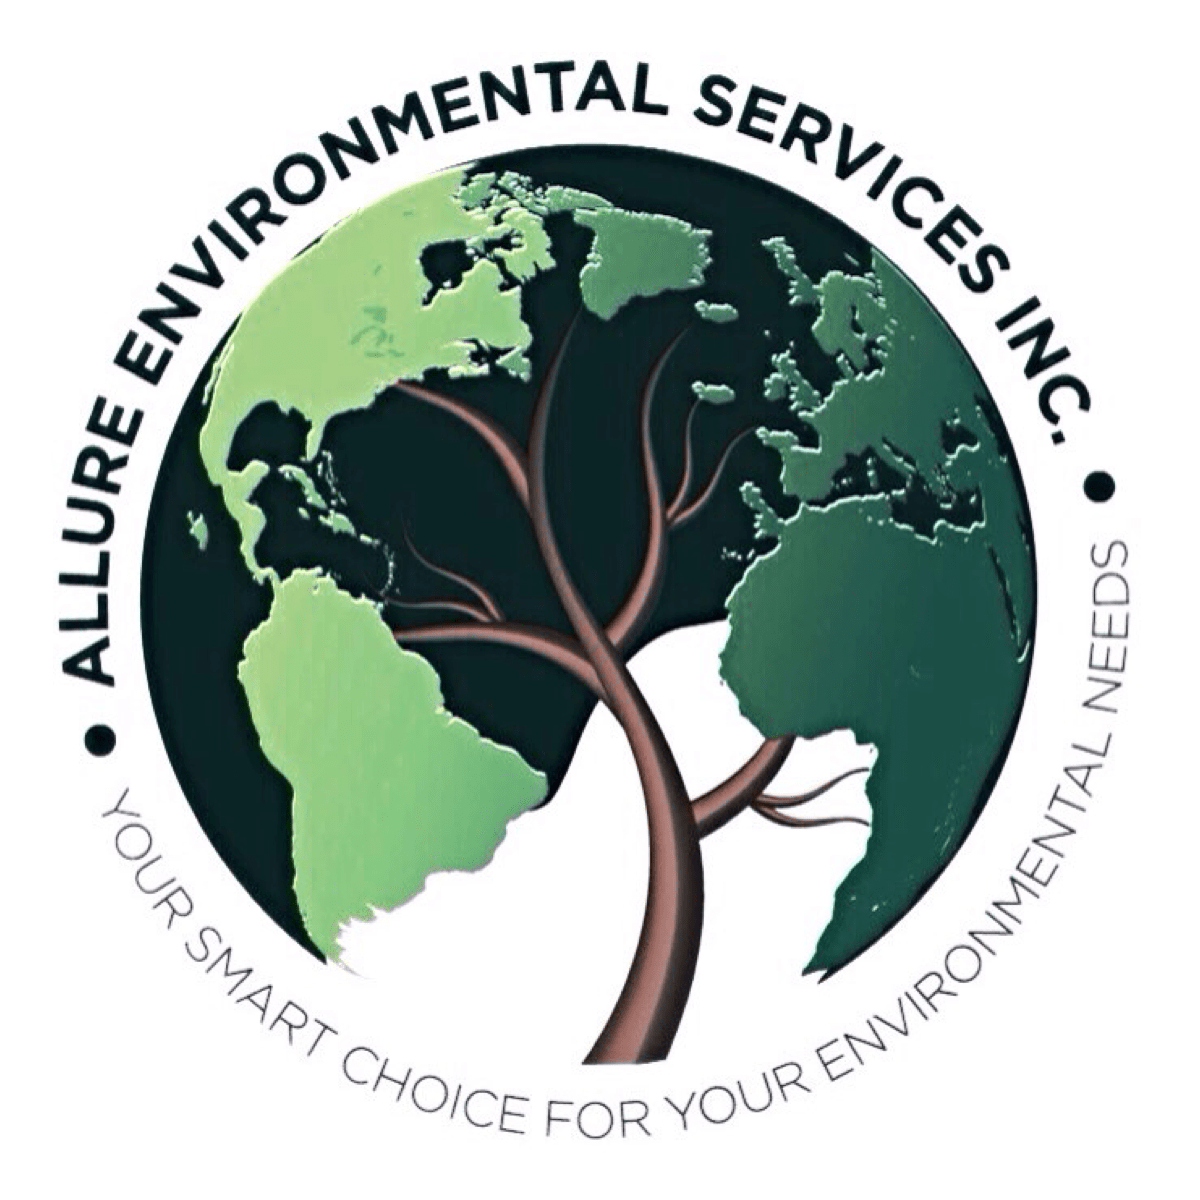 Allure Environmental Services Inc